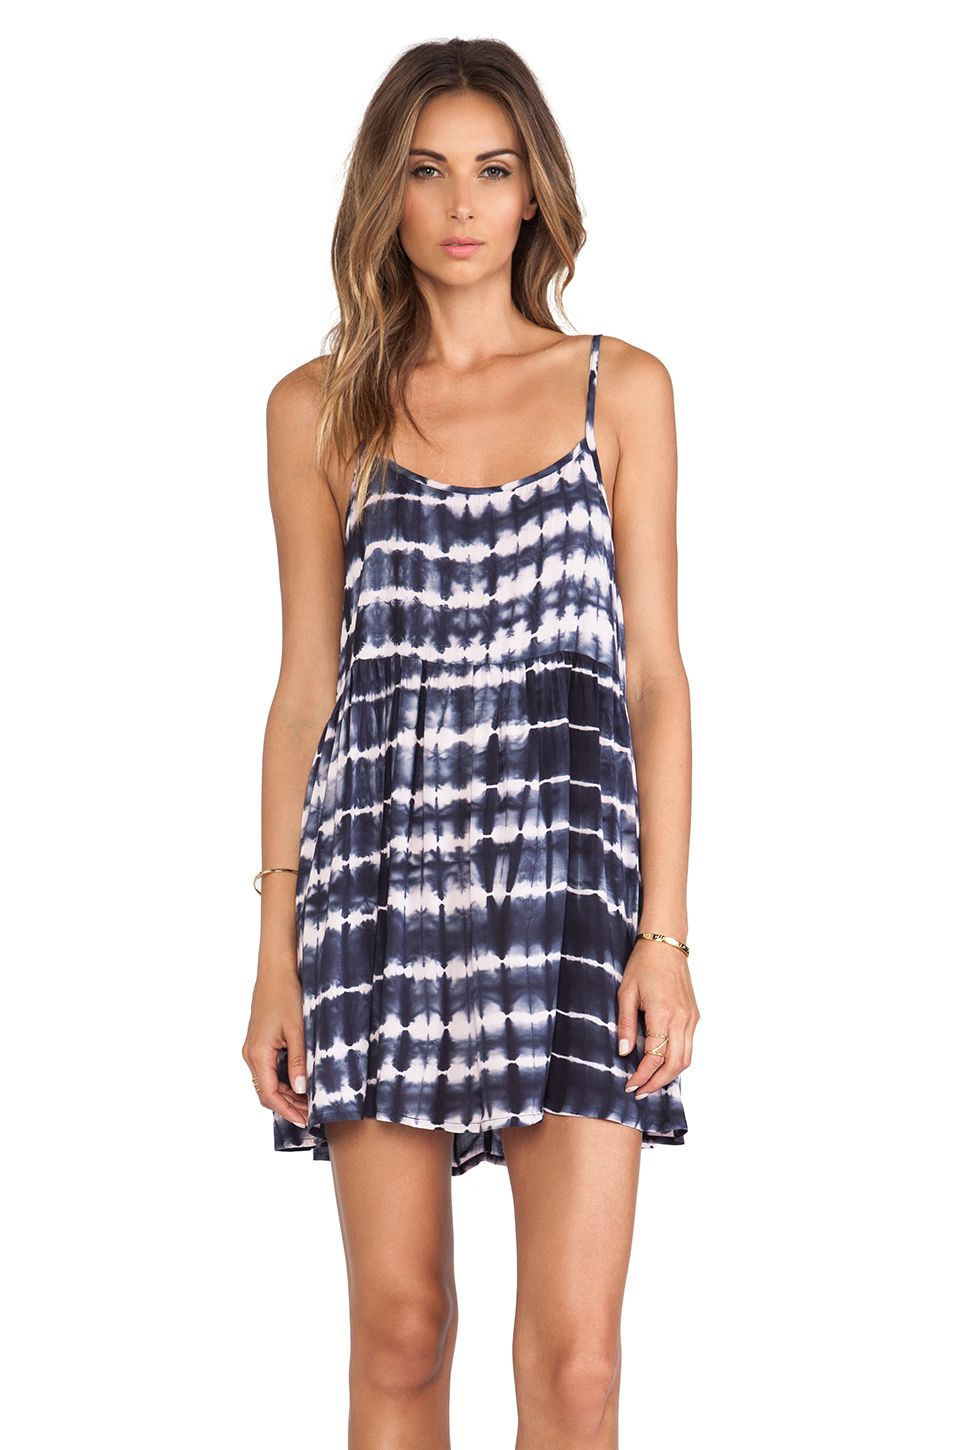 Minkpink shadow play dress @REVOLVE (revolveclothing.com)